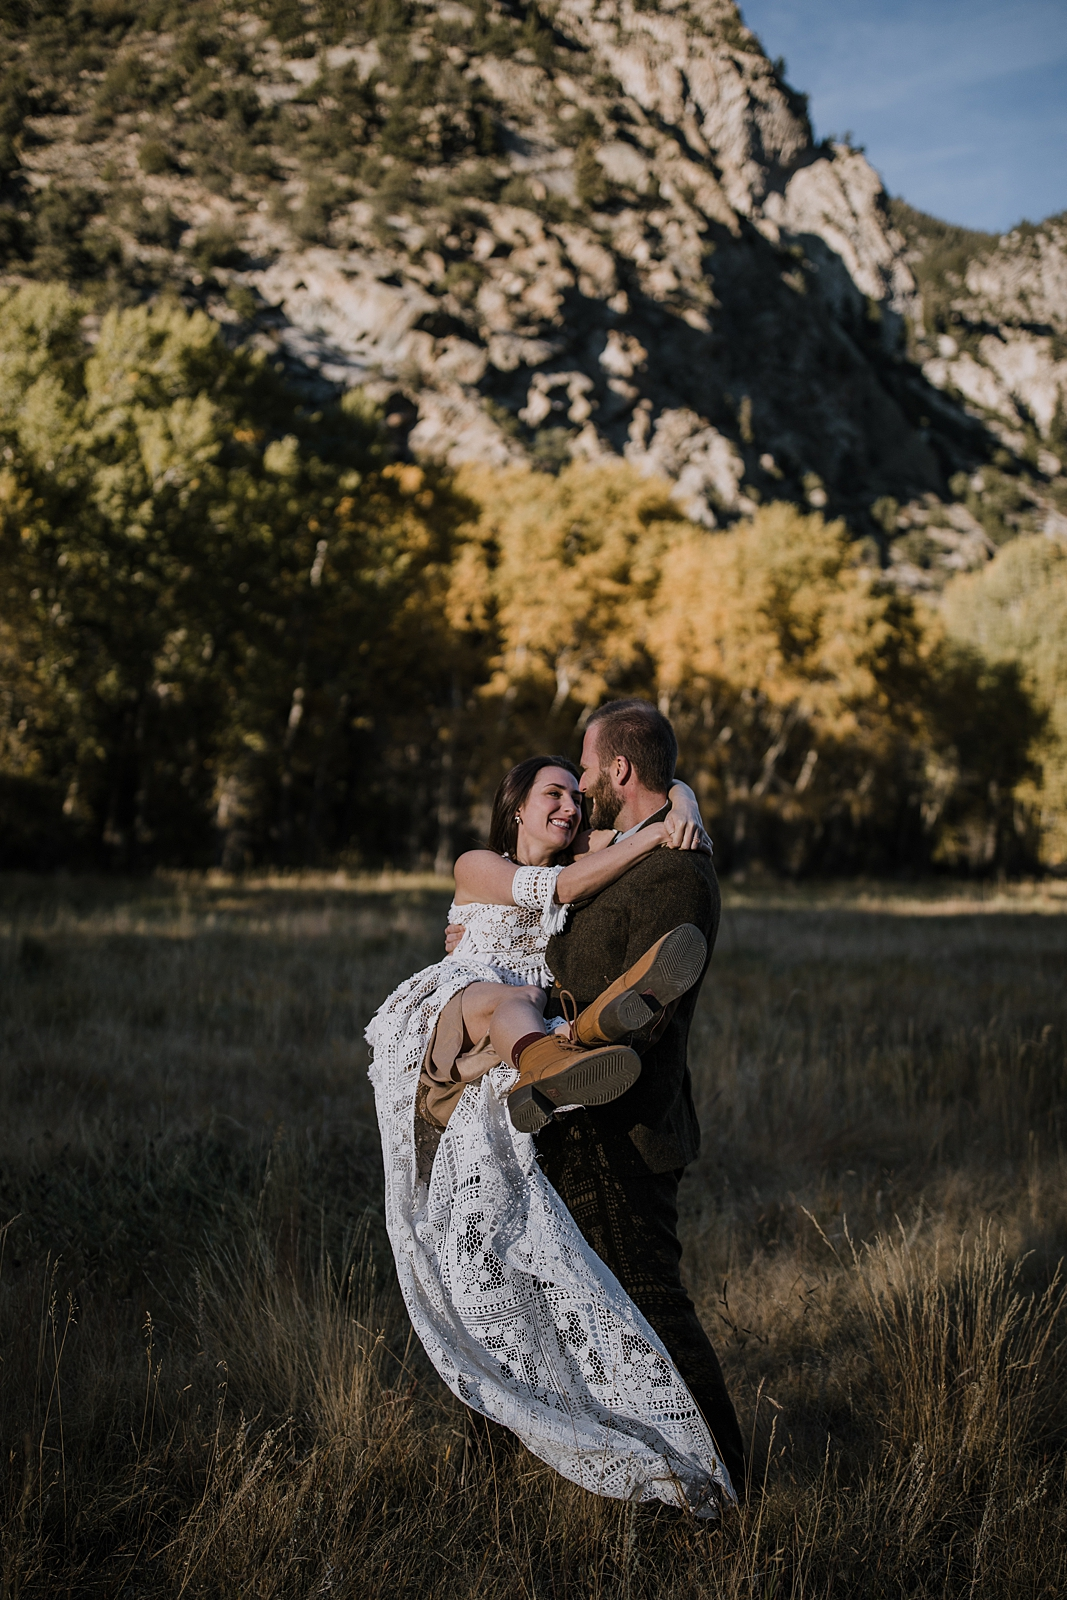 wedding couple jumping, weddings that include dogs, nathrop colorado elopement, bridal day after session, elopement celebration, nathrop colorado in the fall, fall hiking in nathrop